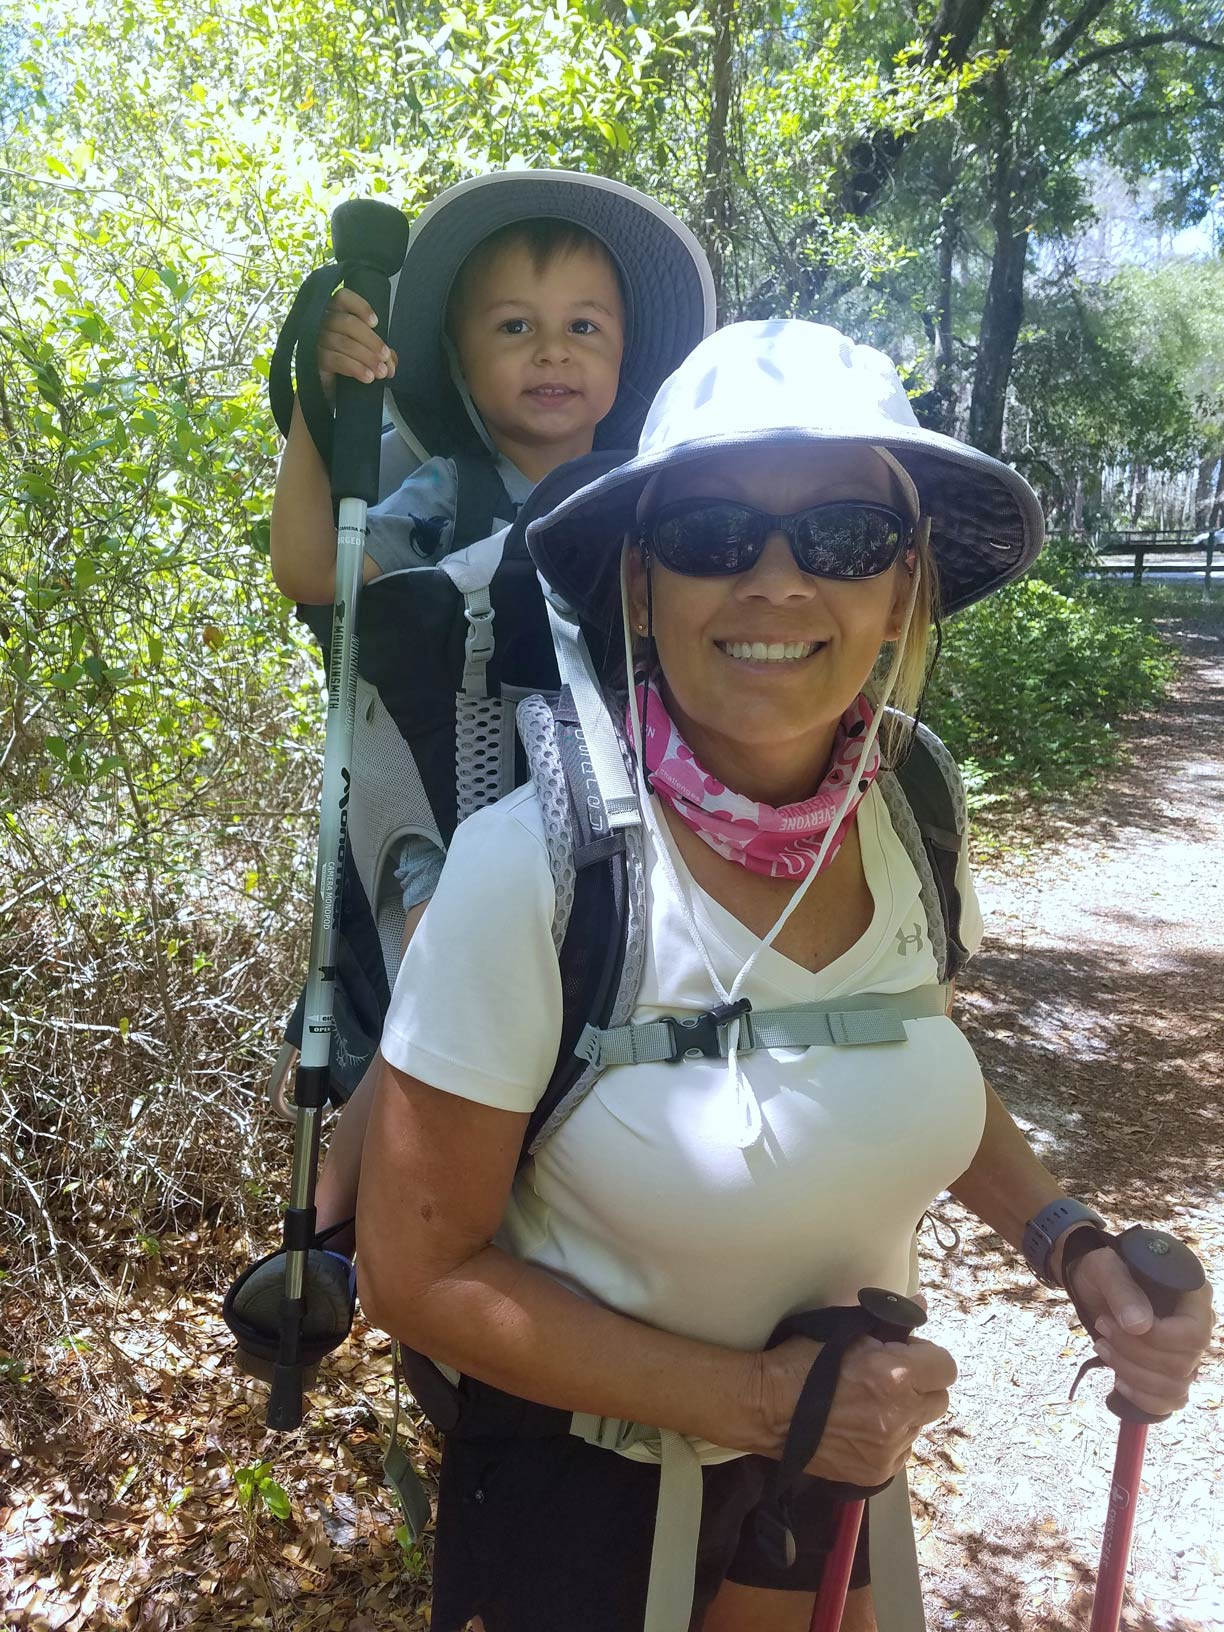 Cathy Lail and her grandson prepare for a hike into the woods to observe eagle nests.